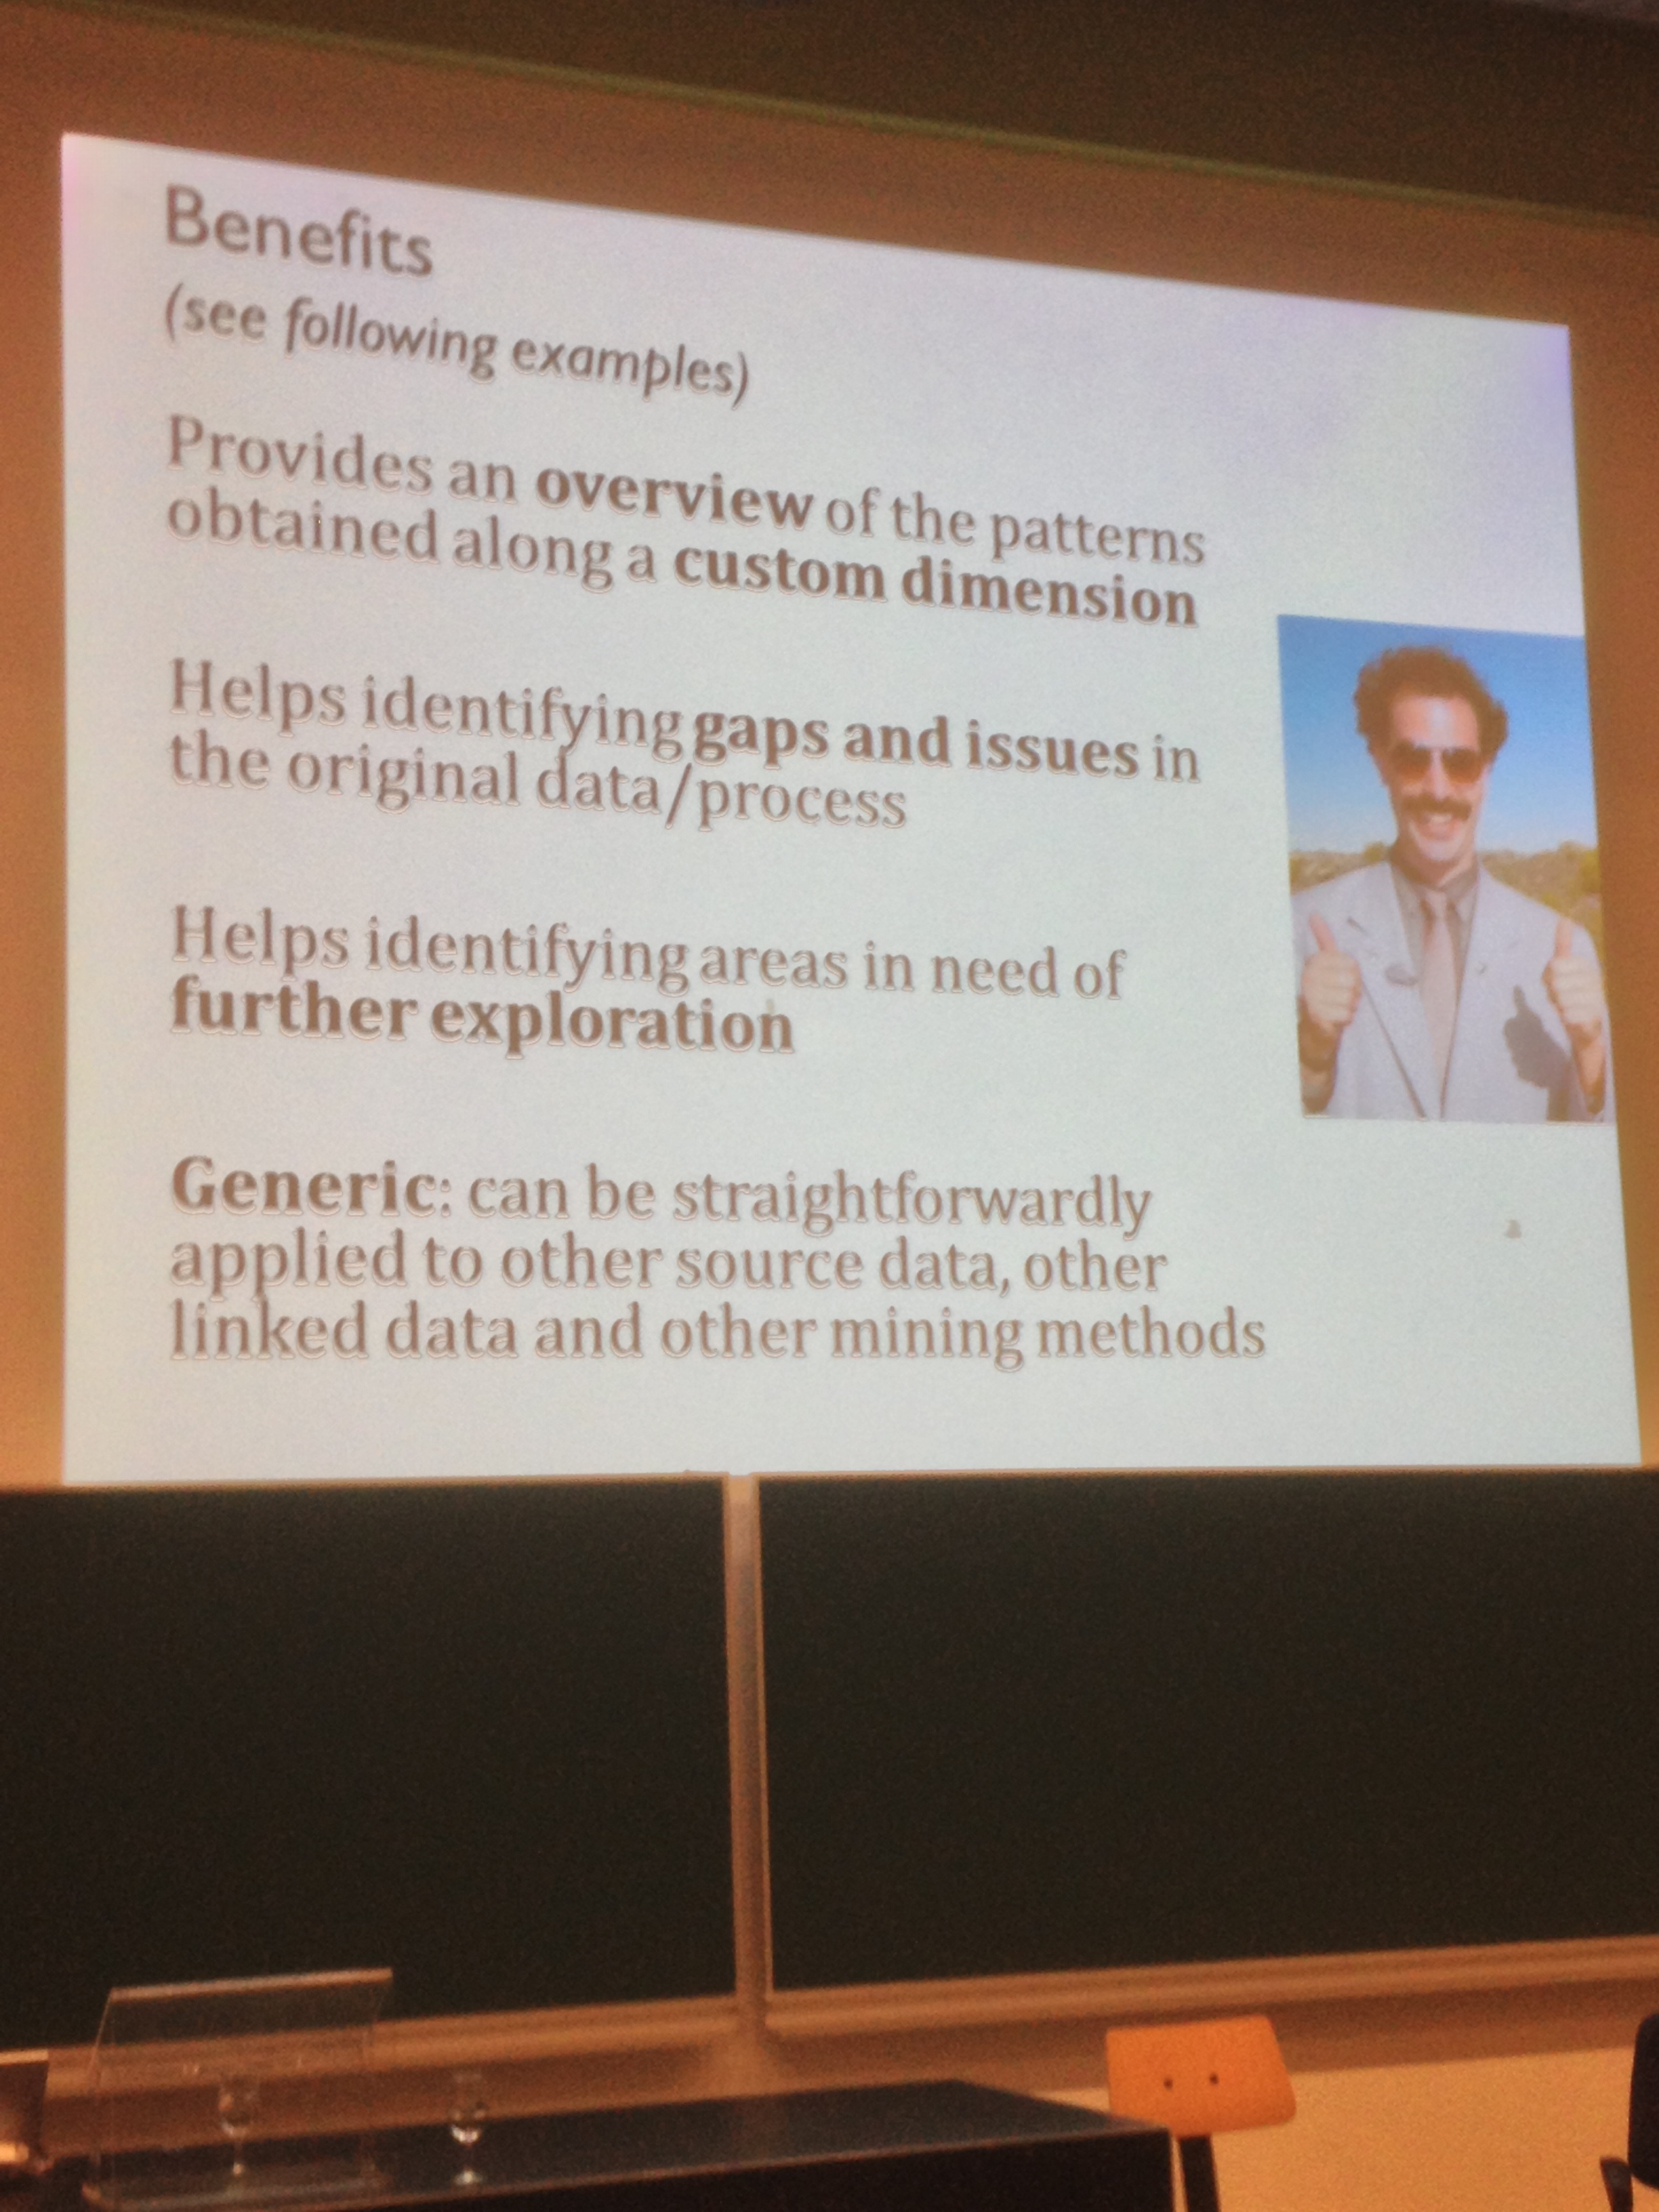 Benefits of linked data for analytics